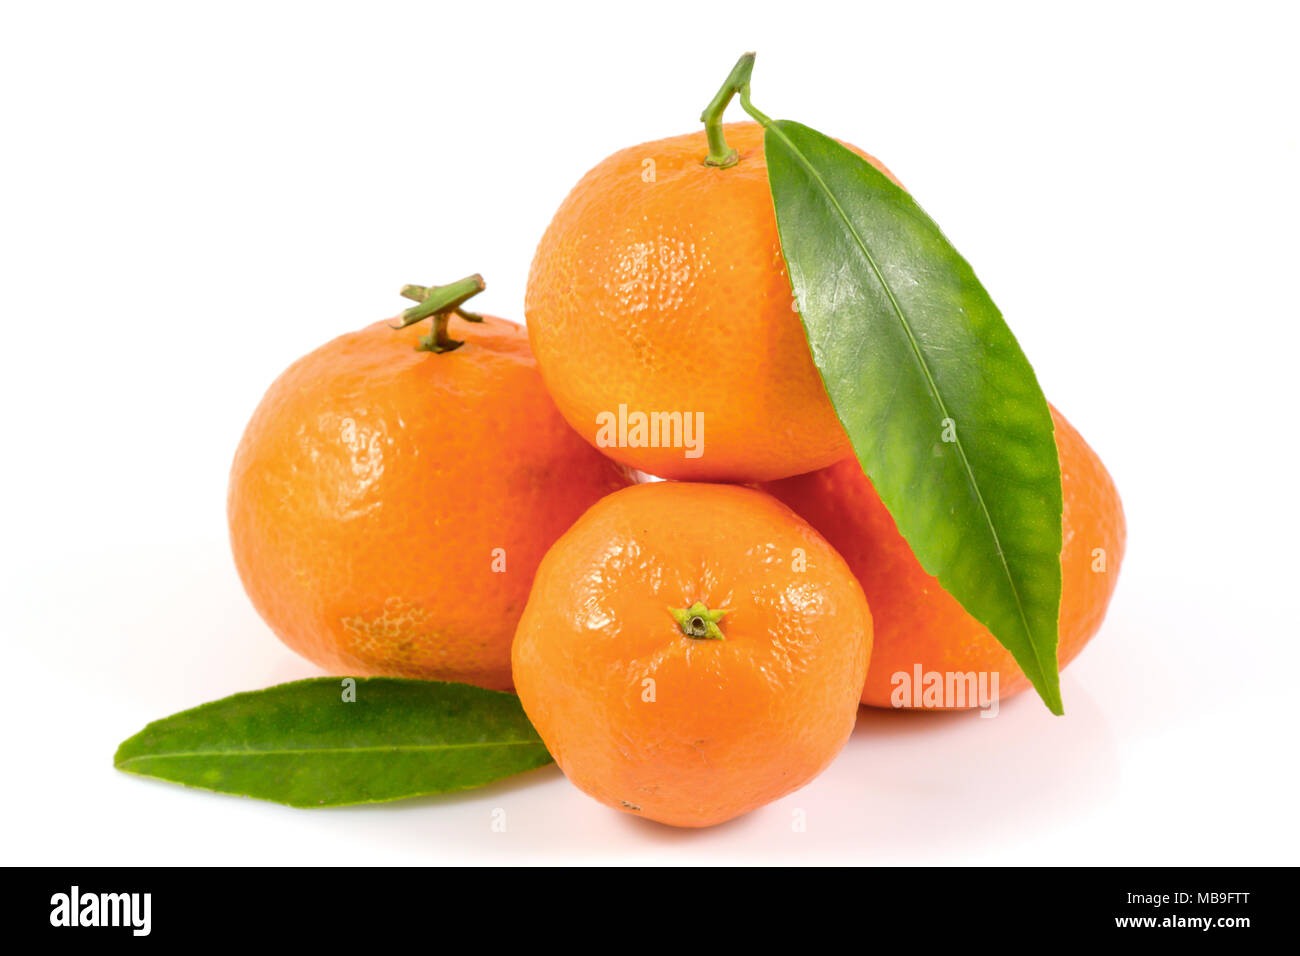 Fresh tangerines oranges with leaves isolated on white background, Healthy fruits, with a clipping path Top view. - Stock Image